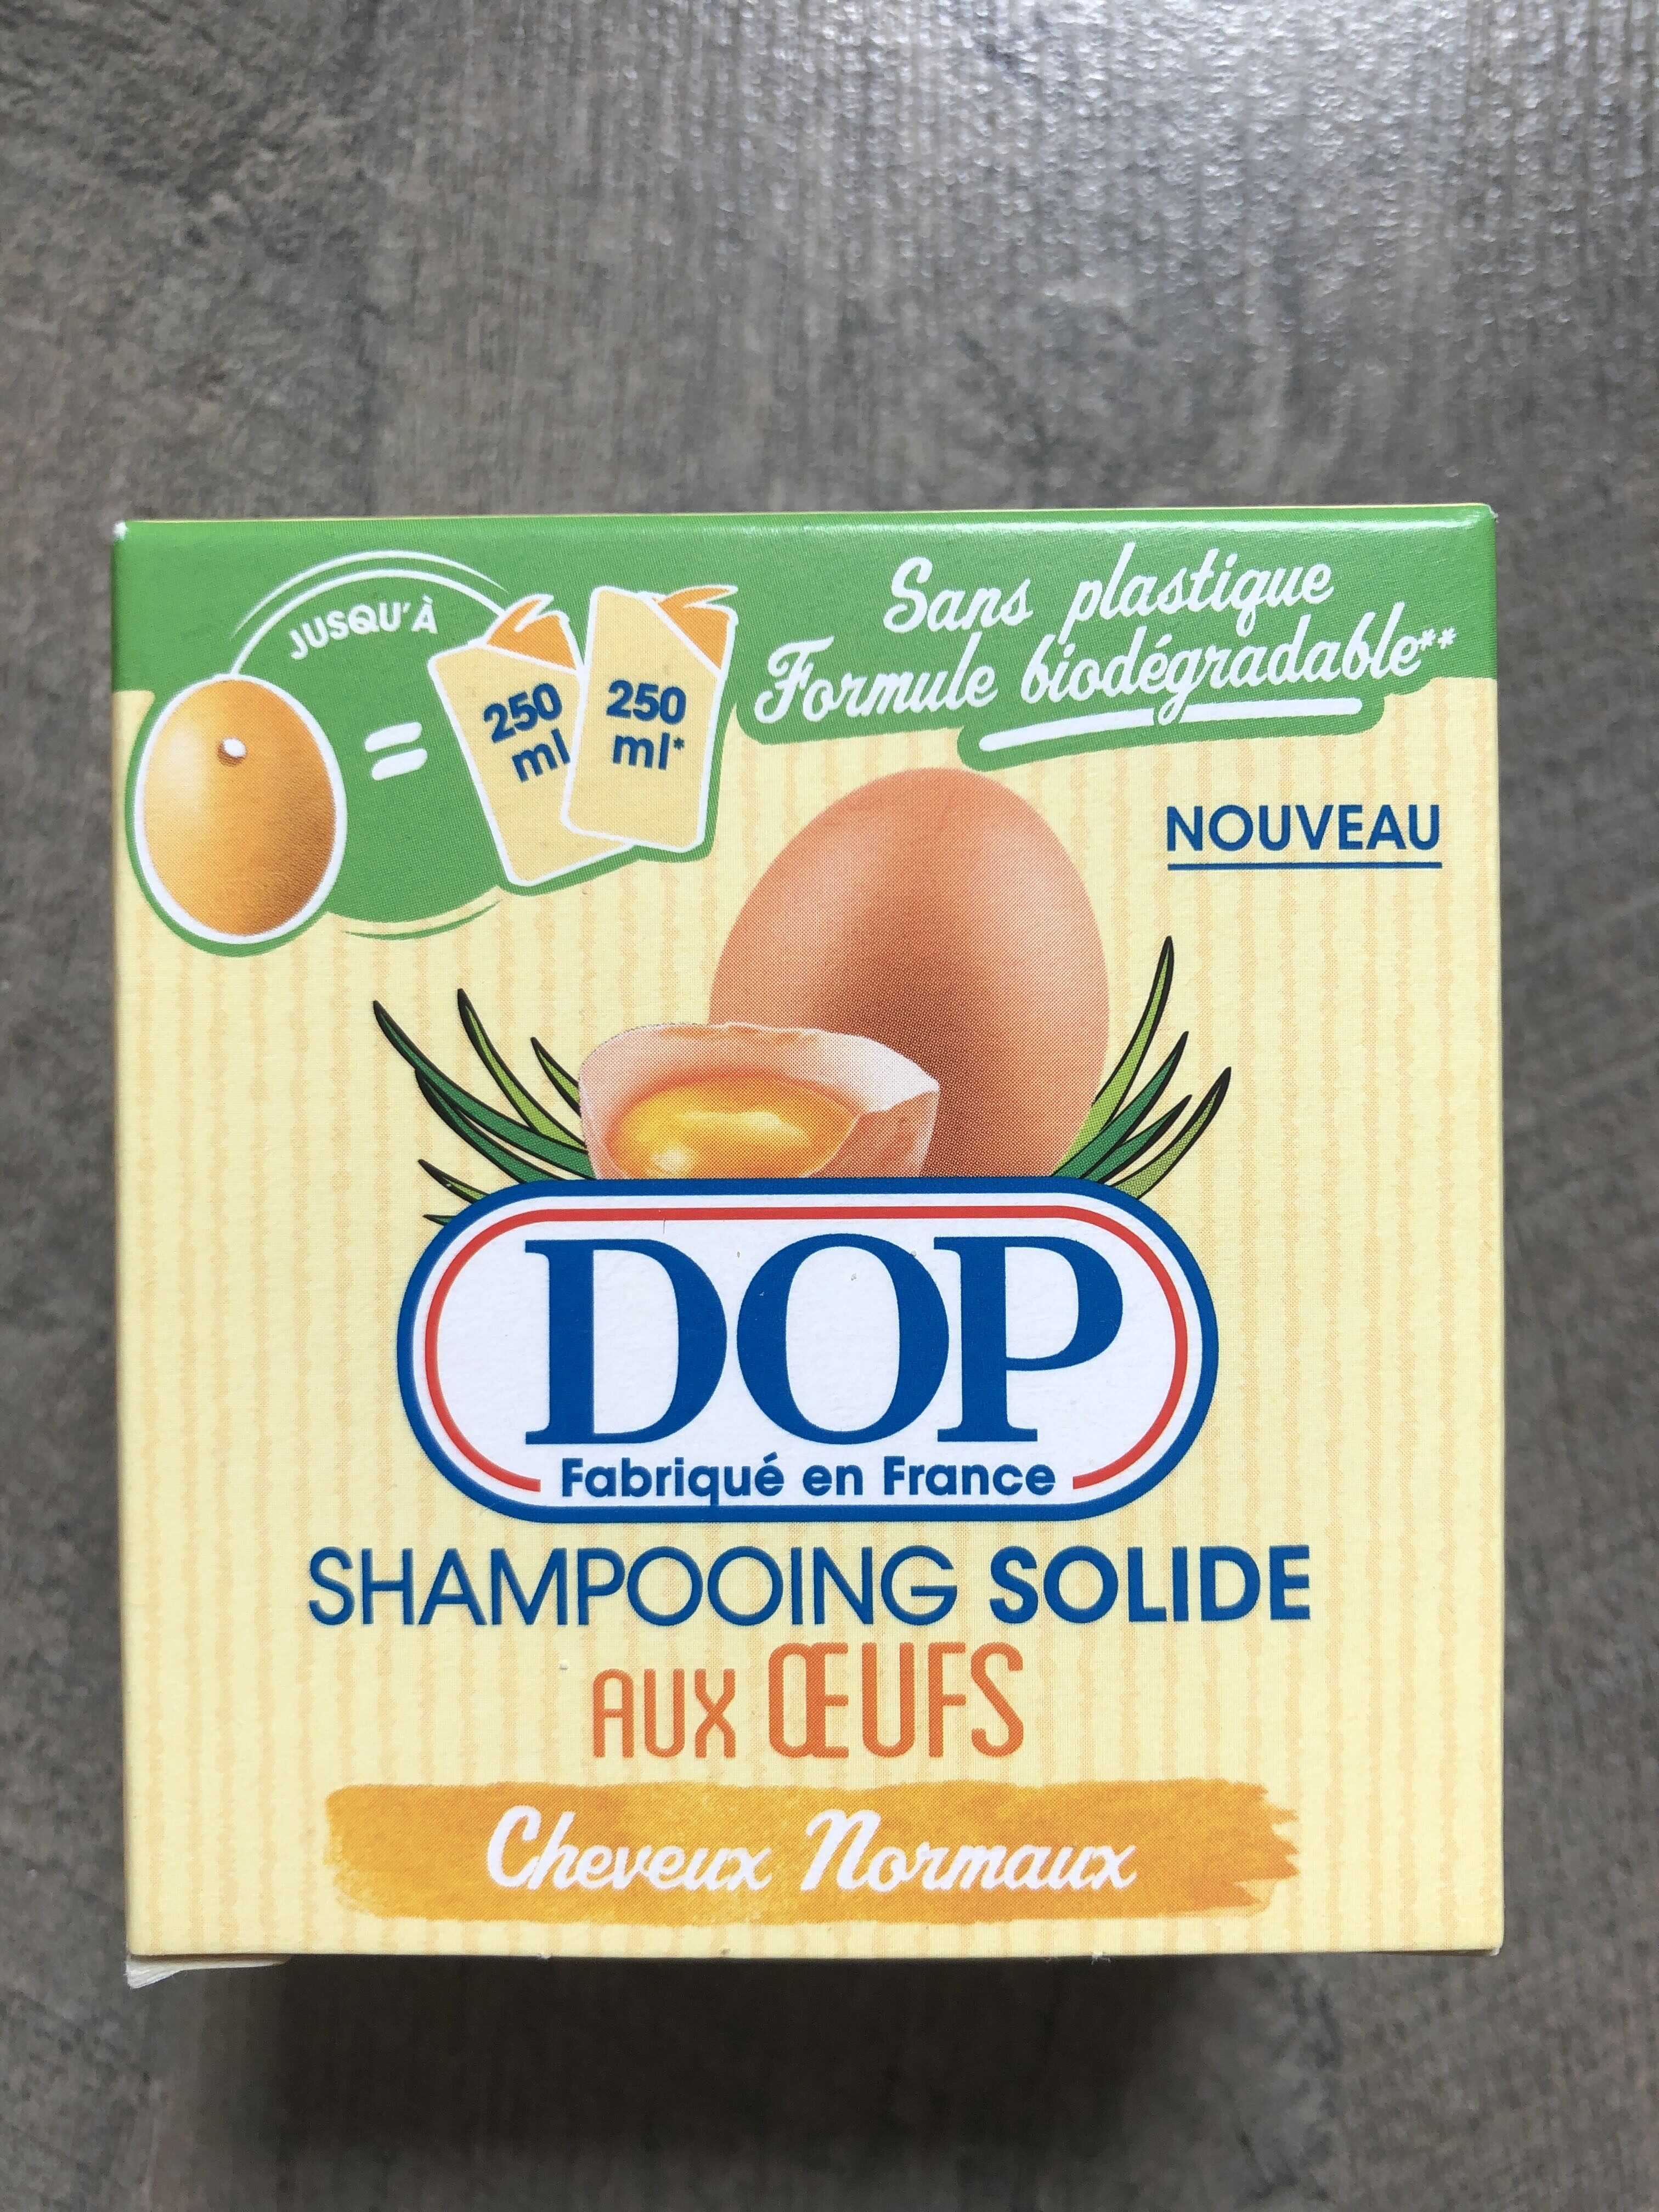 Shampooing solide aux oeufs cheveux normaux - Product - en